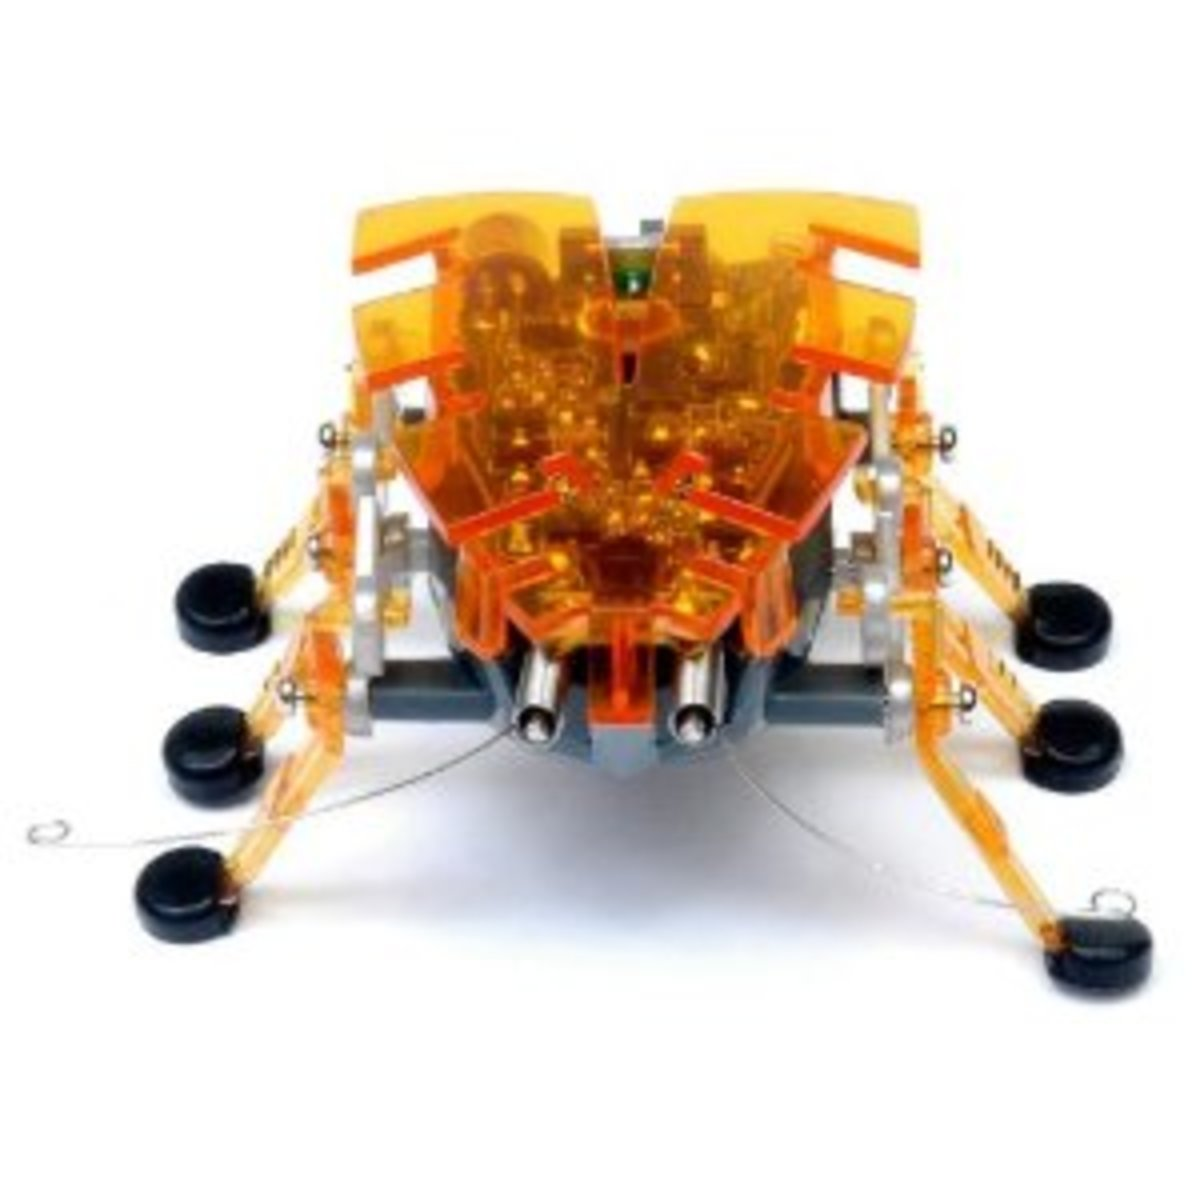 Hexbugs Review:  Types of Hex Bugs, The Original Spider, The Difference Between the Bugs and What They Do